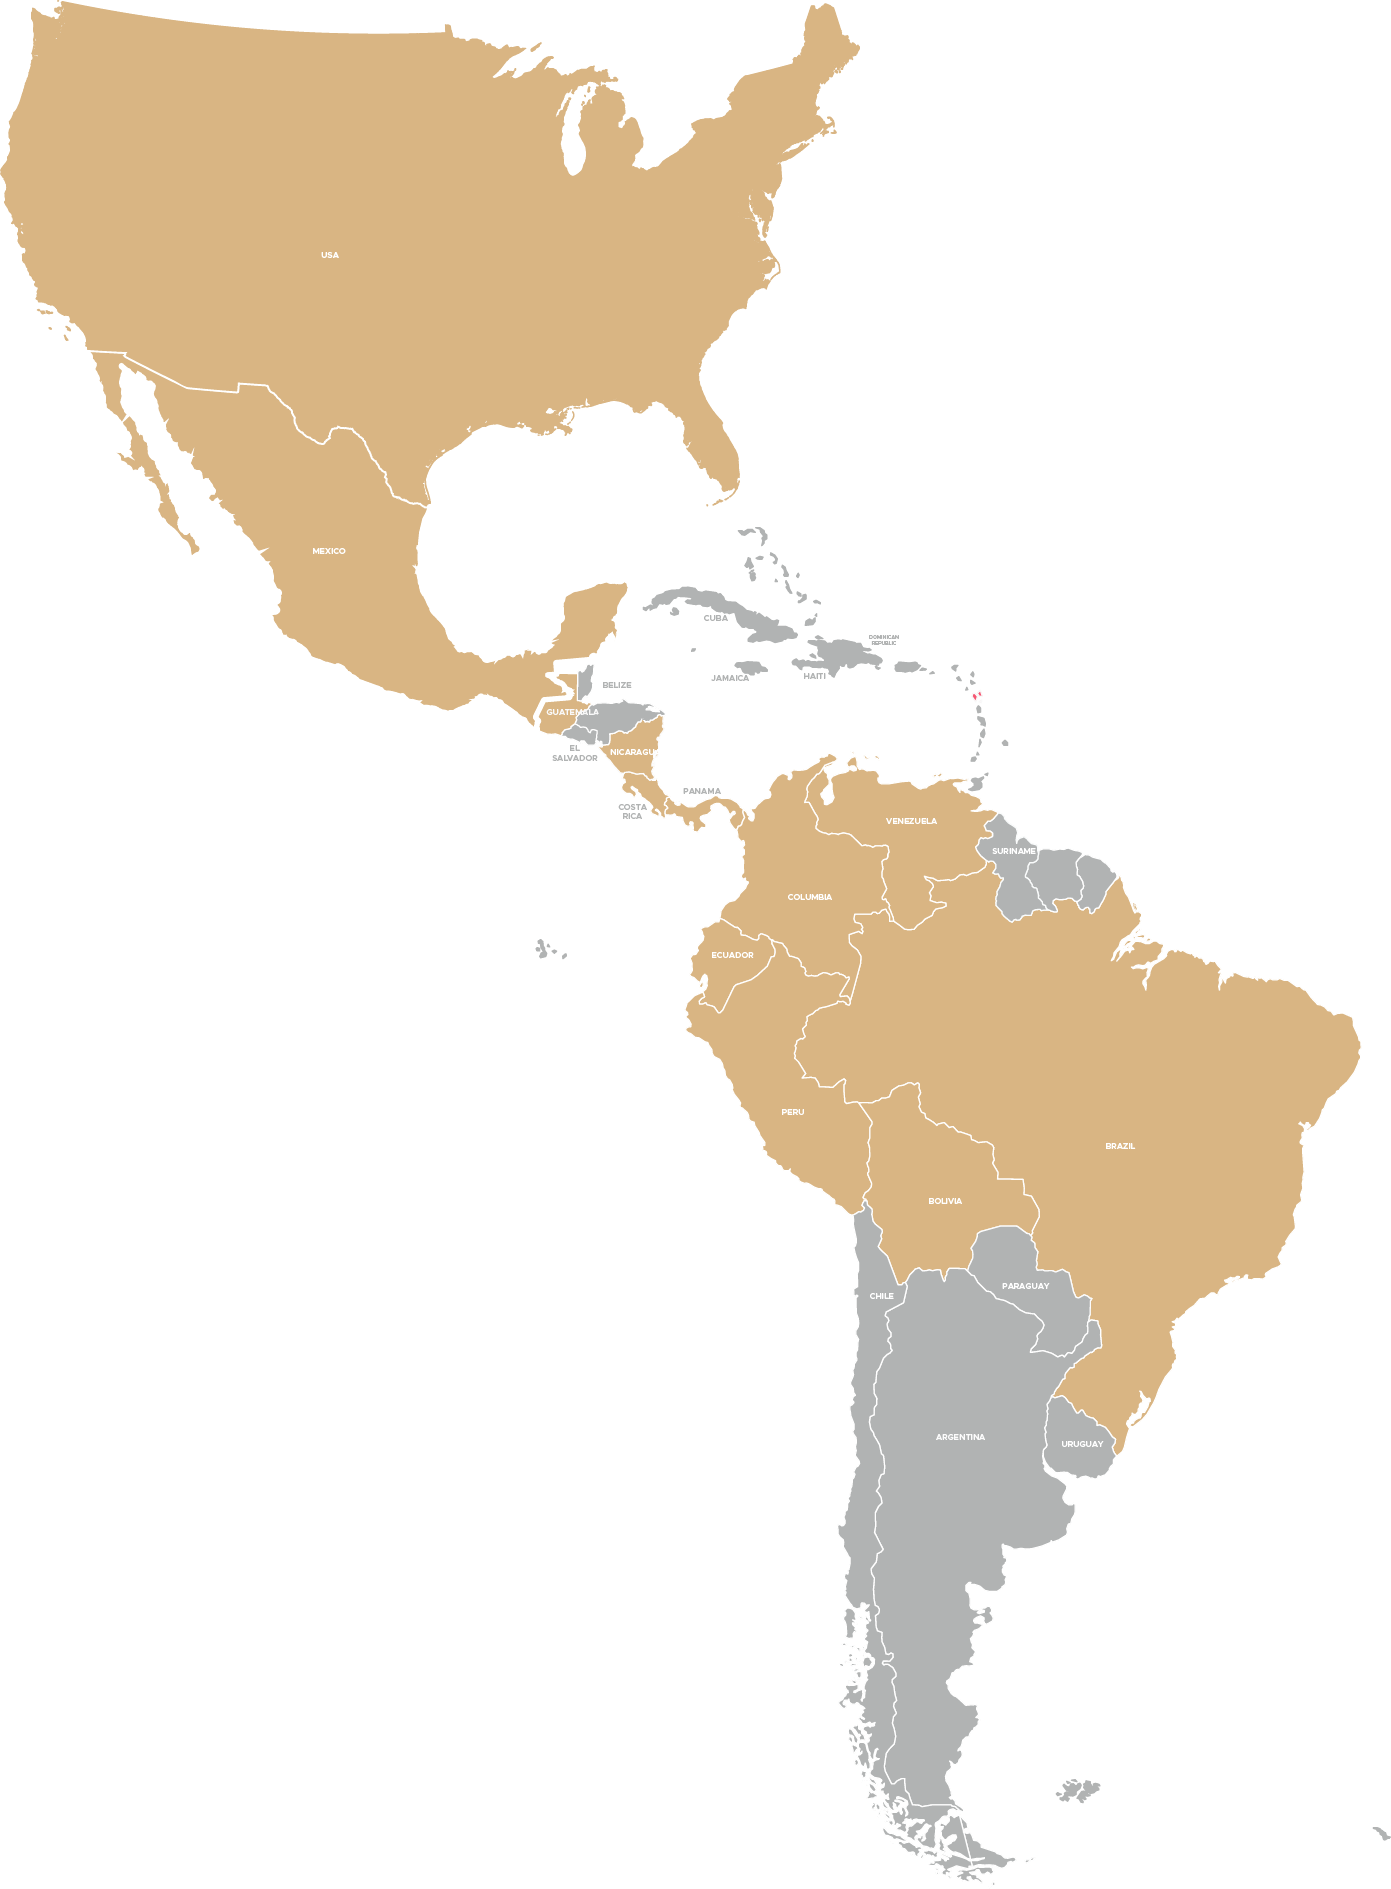 Countries covered by our production network. - Currently, we rely on trusted production professionals in the US, Mexico, Guatemala, Nicaragua, Panama, Costa Rica, Venezuela, Colombia, Ecuador, Peru, Bolivia and Brazil. Meet some of our production network members below or use the form to get-in-touch and learn how to collaborate with us on future productions!